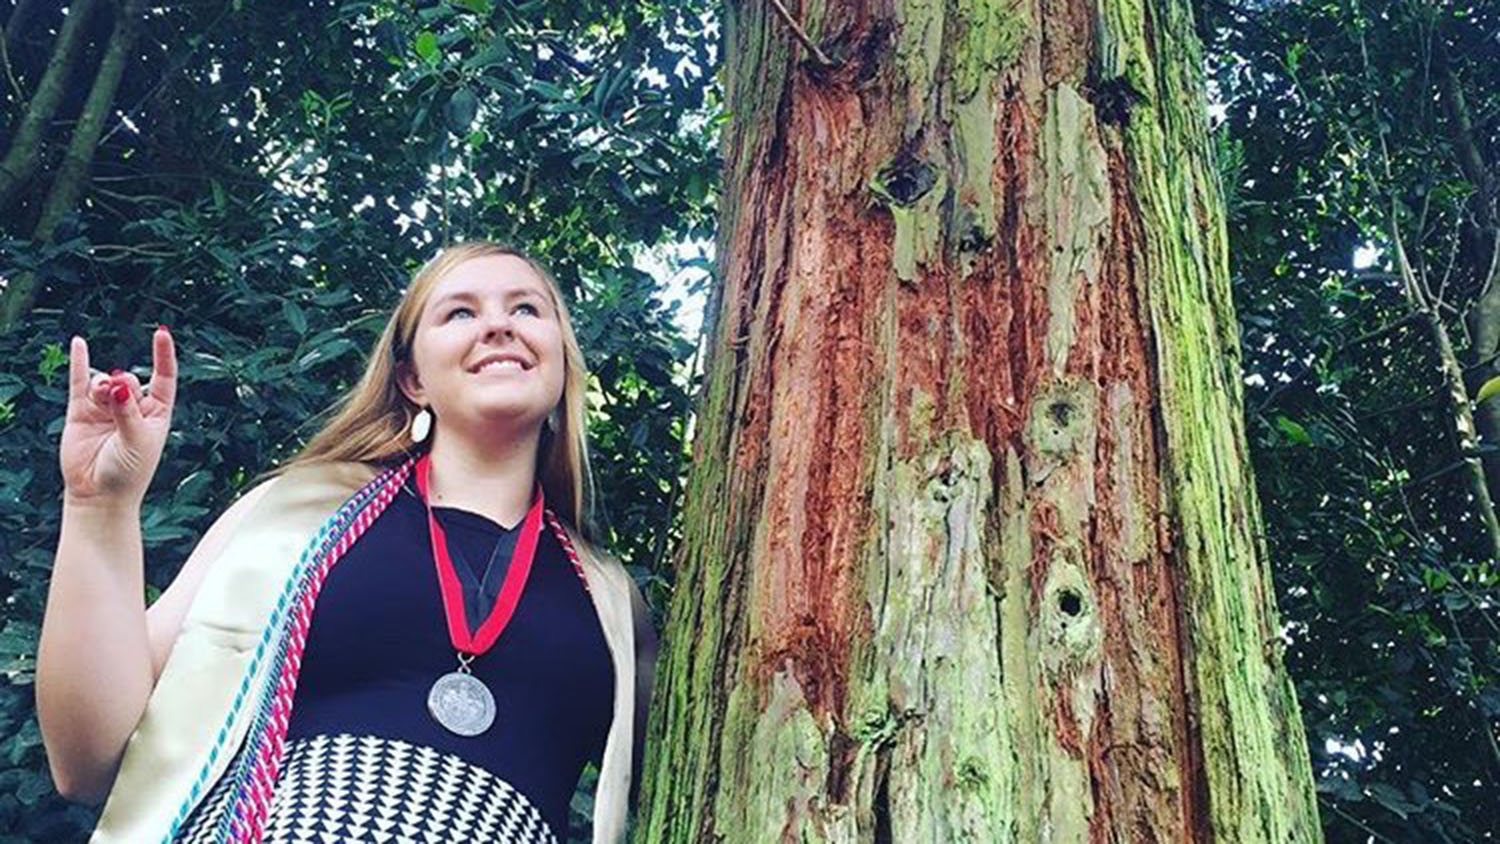 Britanny Bell poses with tree